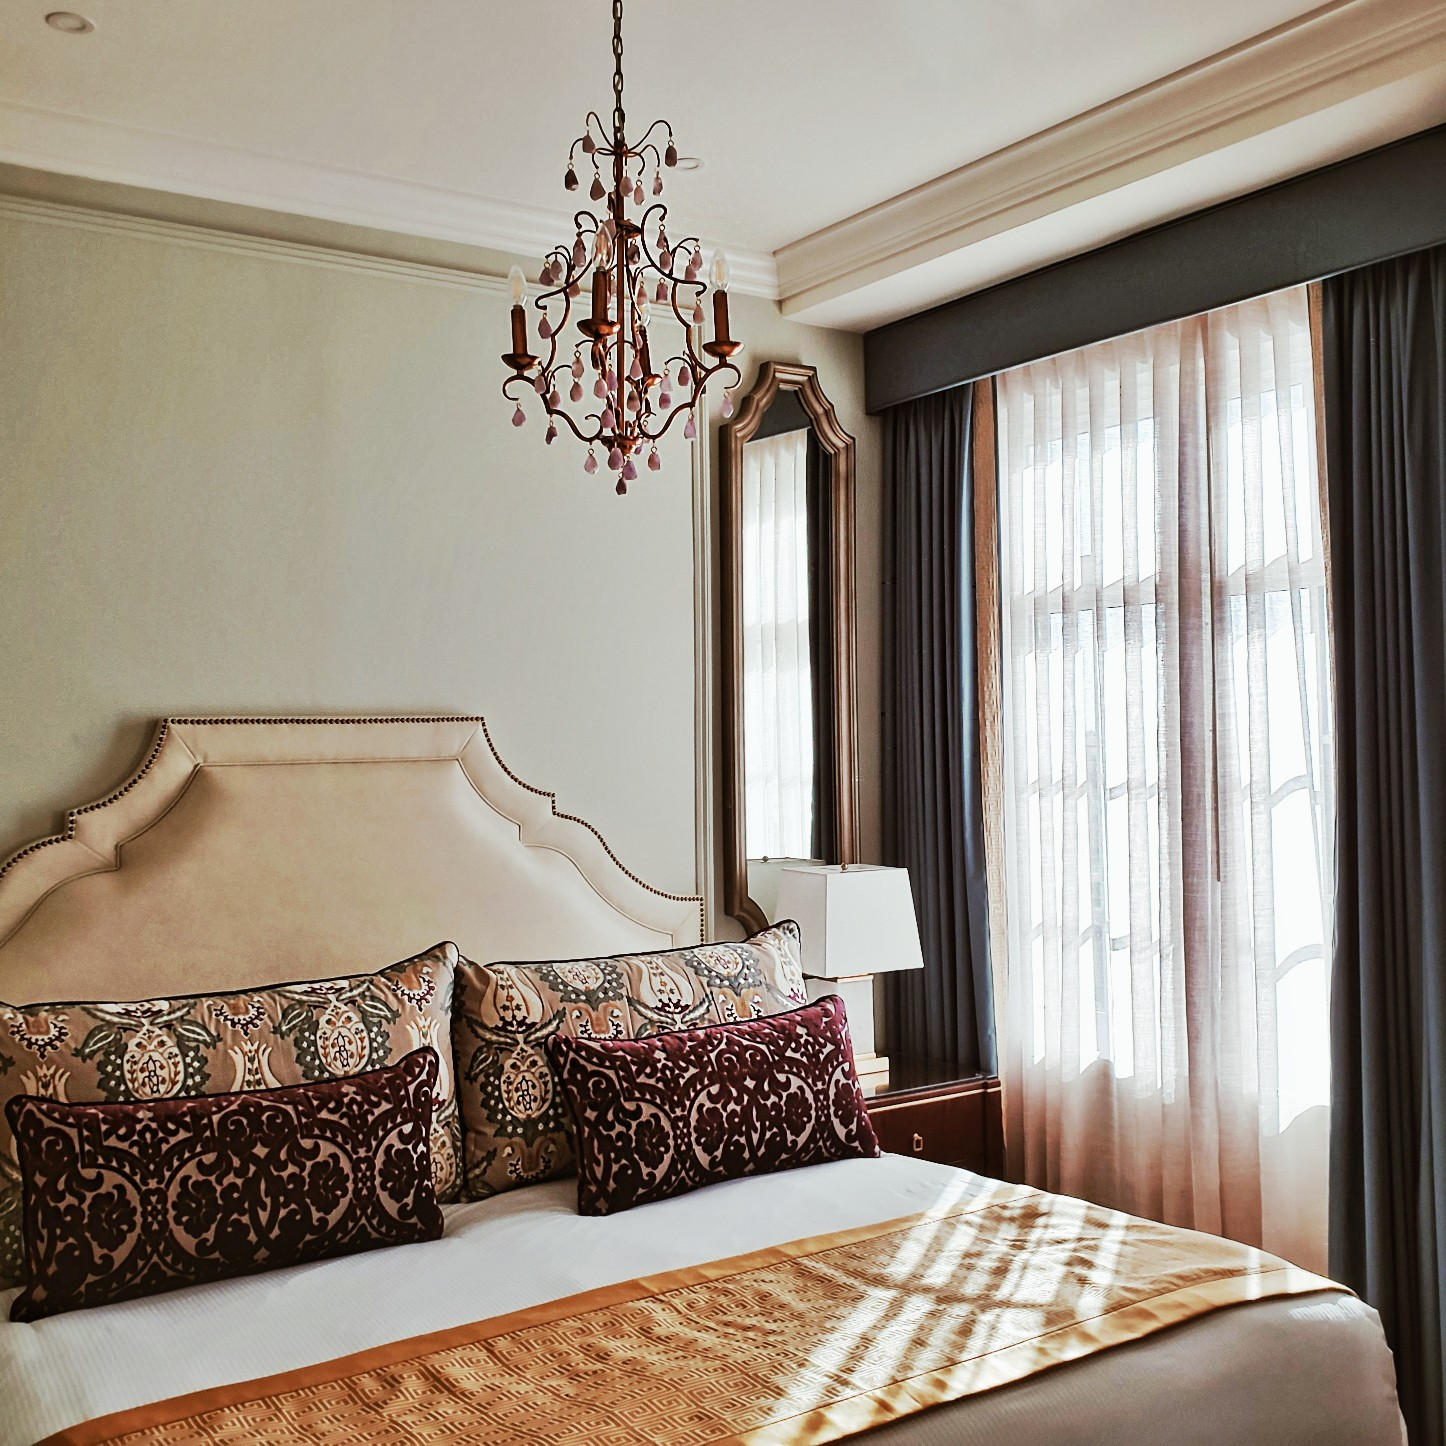 Biltmore Hotel Miami Coral Gables Hotel Room Tour and Review